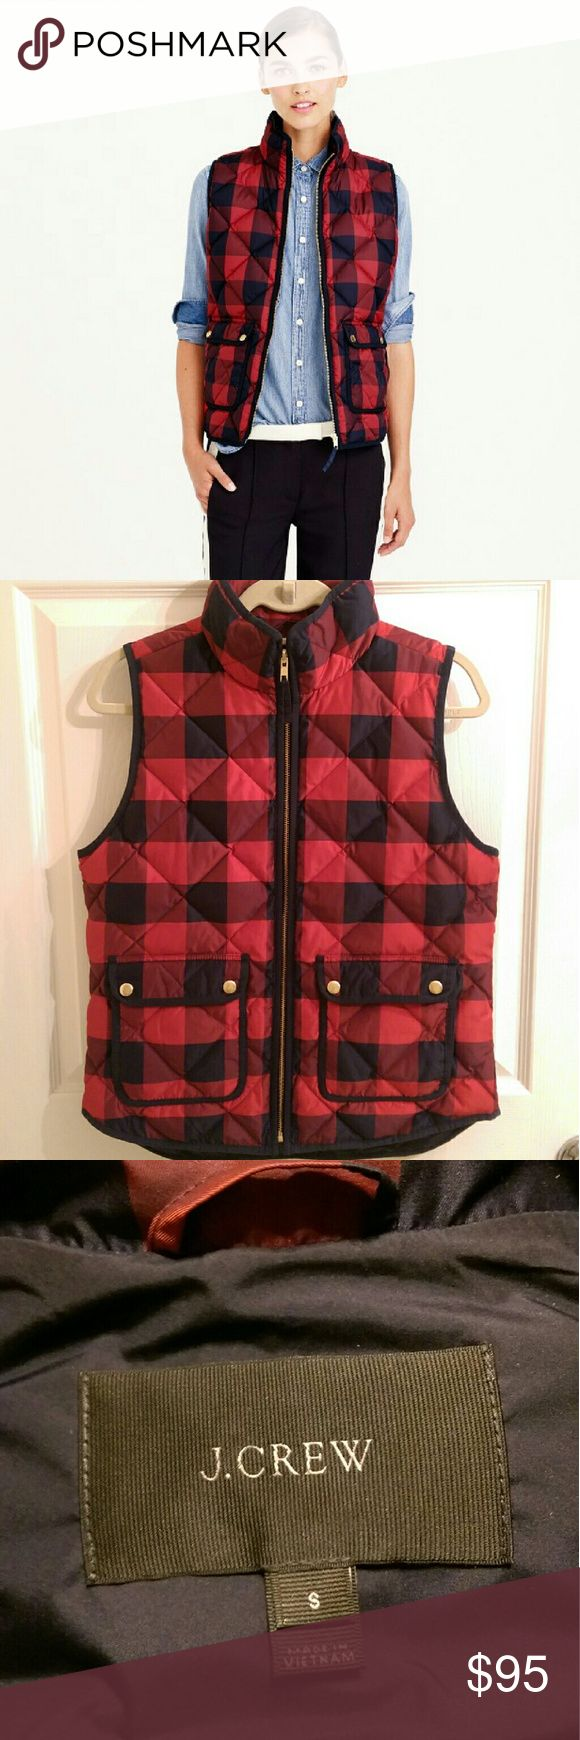 "NWOT J Crew Buffalo Check Excursion Vest New without tags J Crew Buffalo Check Excursion Vest. Size - Small. 24 1/2"" length. Lightweight down vest with sleek quilted design. Excellent layering piece. J. Crew Jackets & Coats Vests"